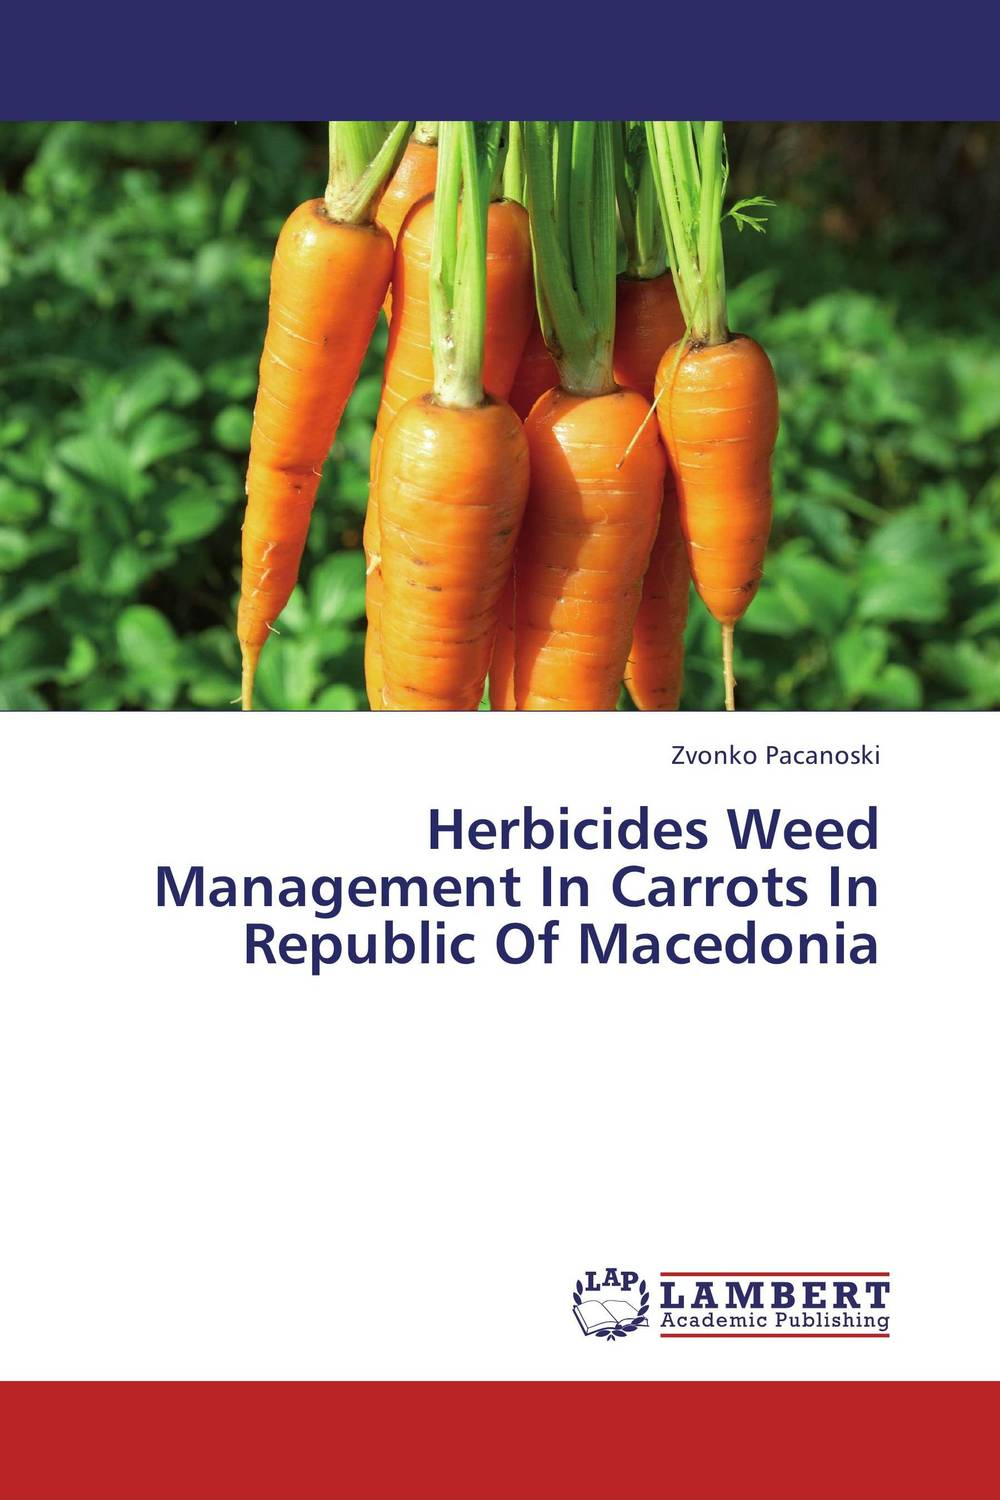 Herbicides Weed Management In Carrots In Republic Of Macedonia ajit kumar paswan and rakesh kumar efficacy of separate and premix formulation of herbicides on weeds